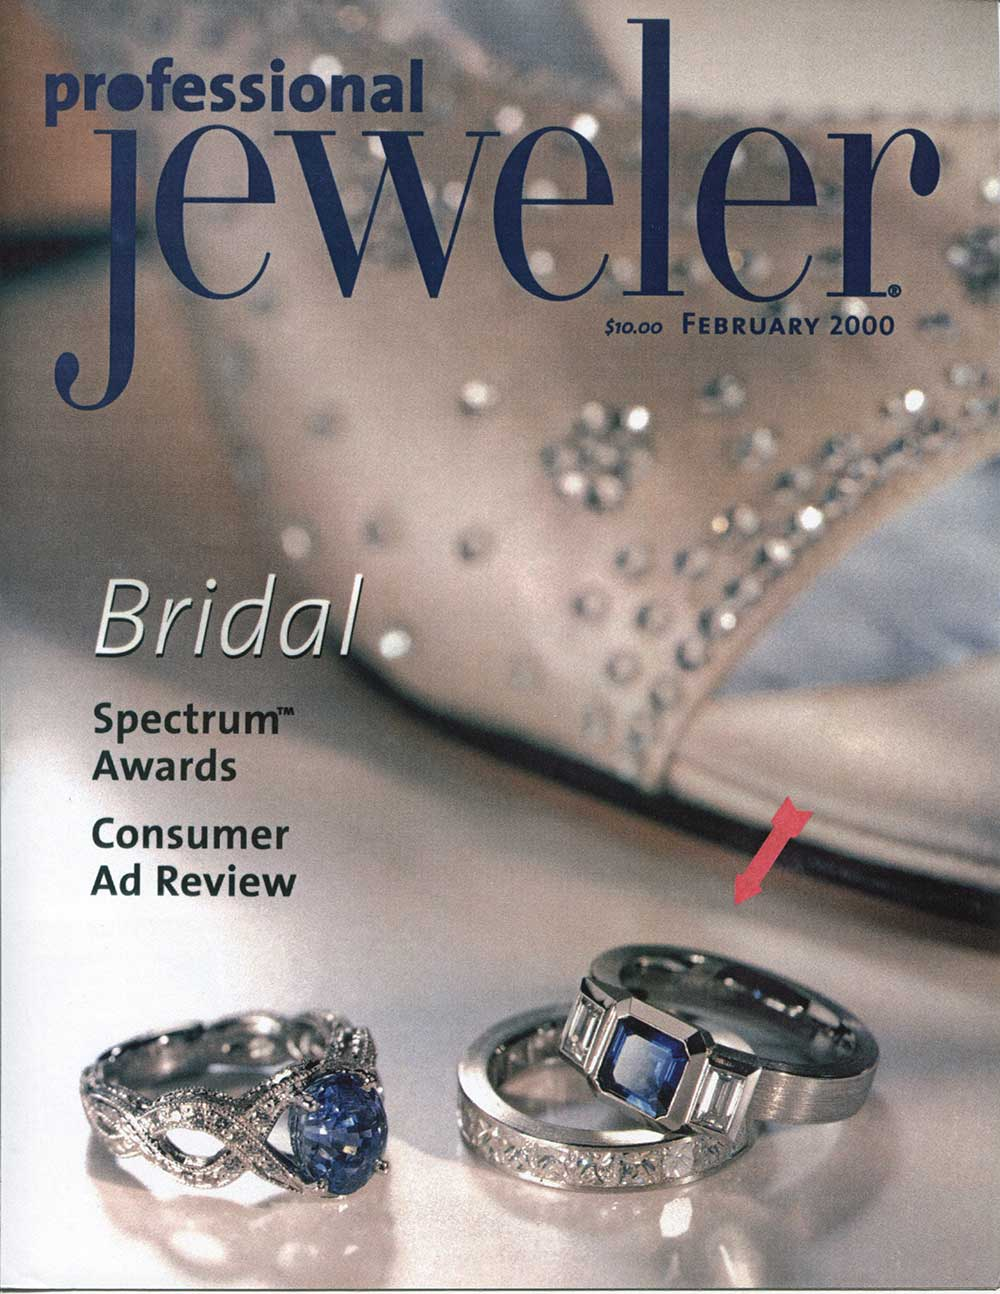 A Professional Jeweler cover with 3 rings including Catherine Iskiw Designs 3 stone Series 20 Ring and Series 14 Band.